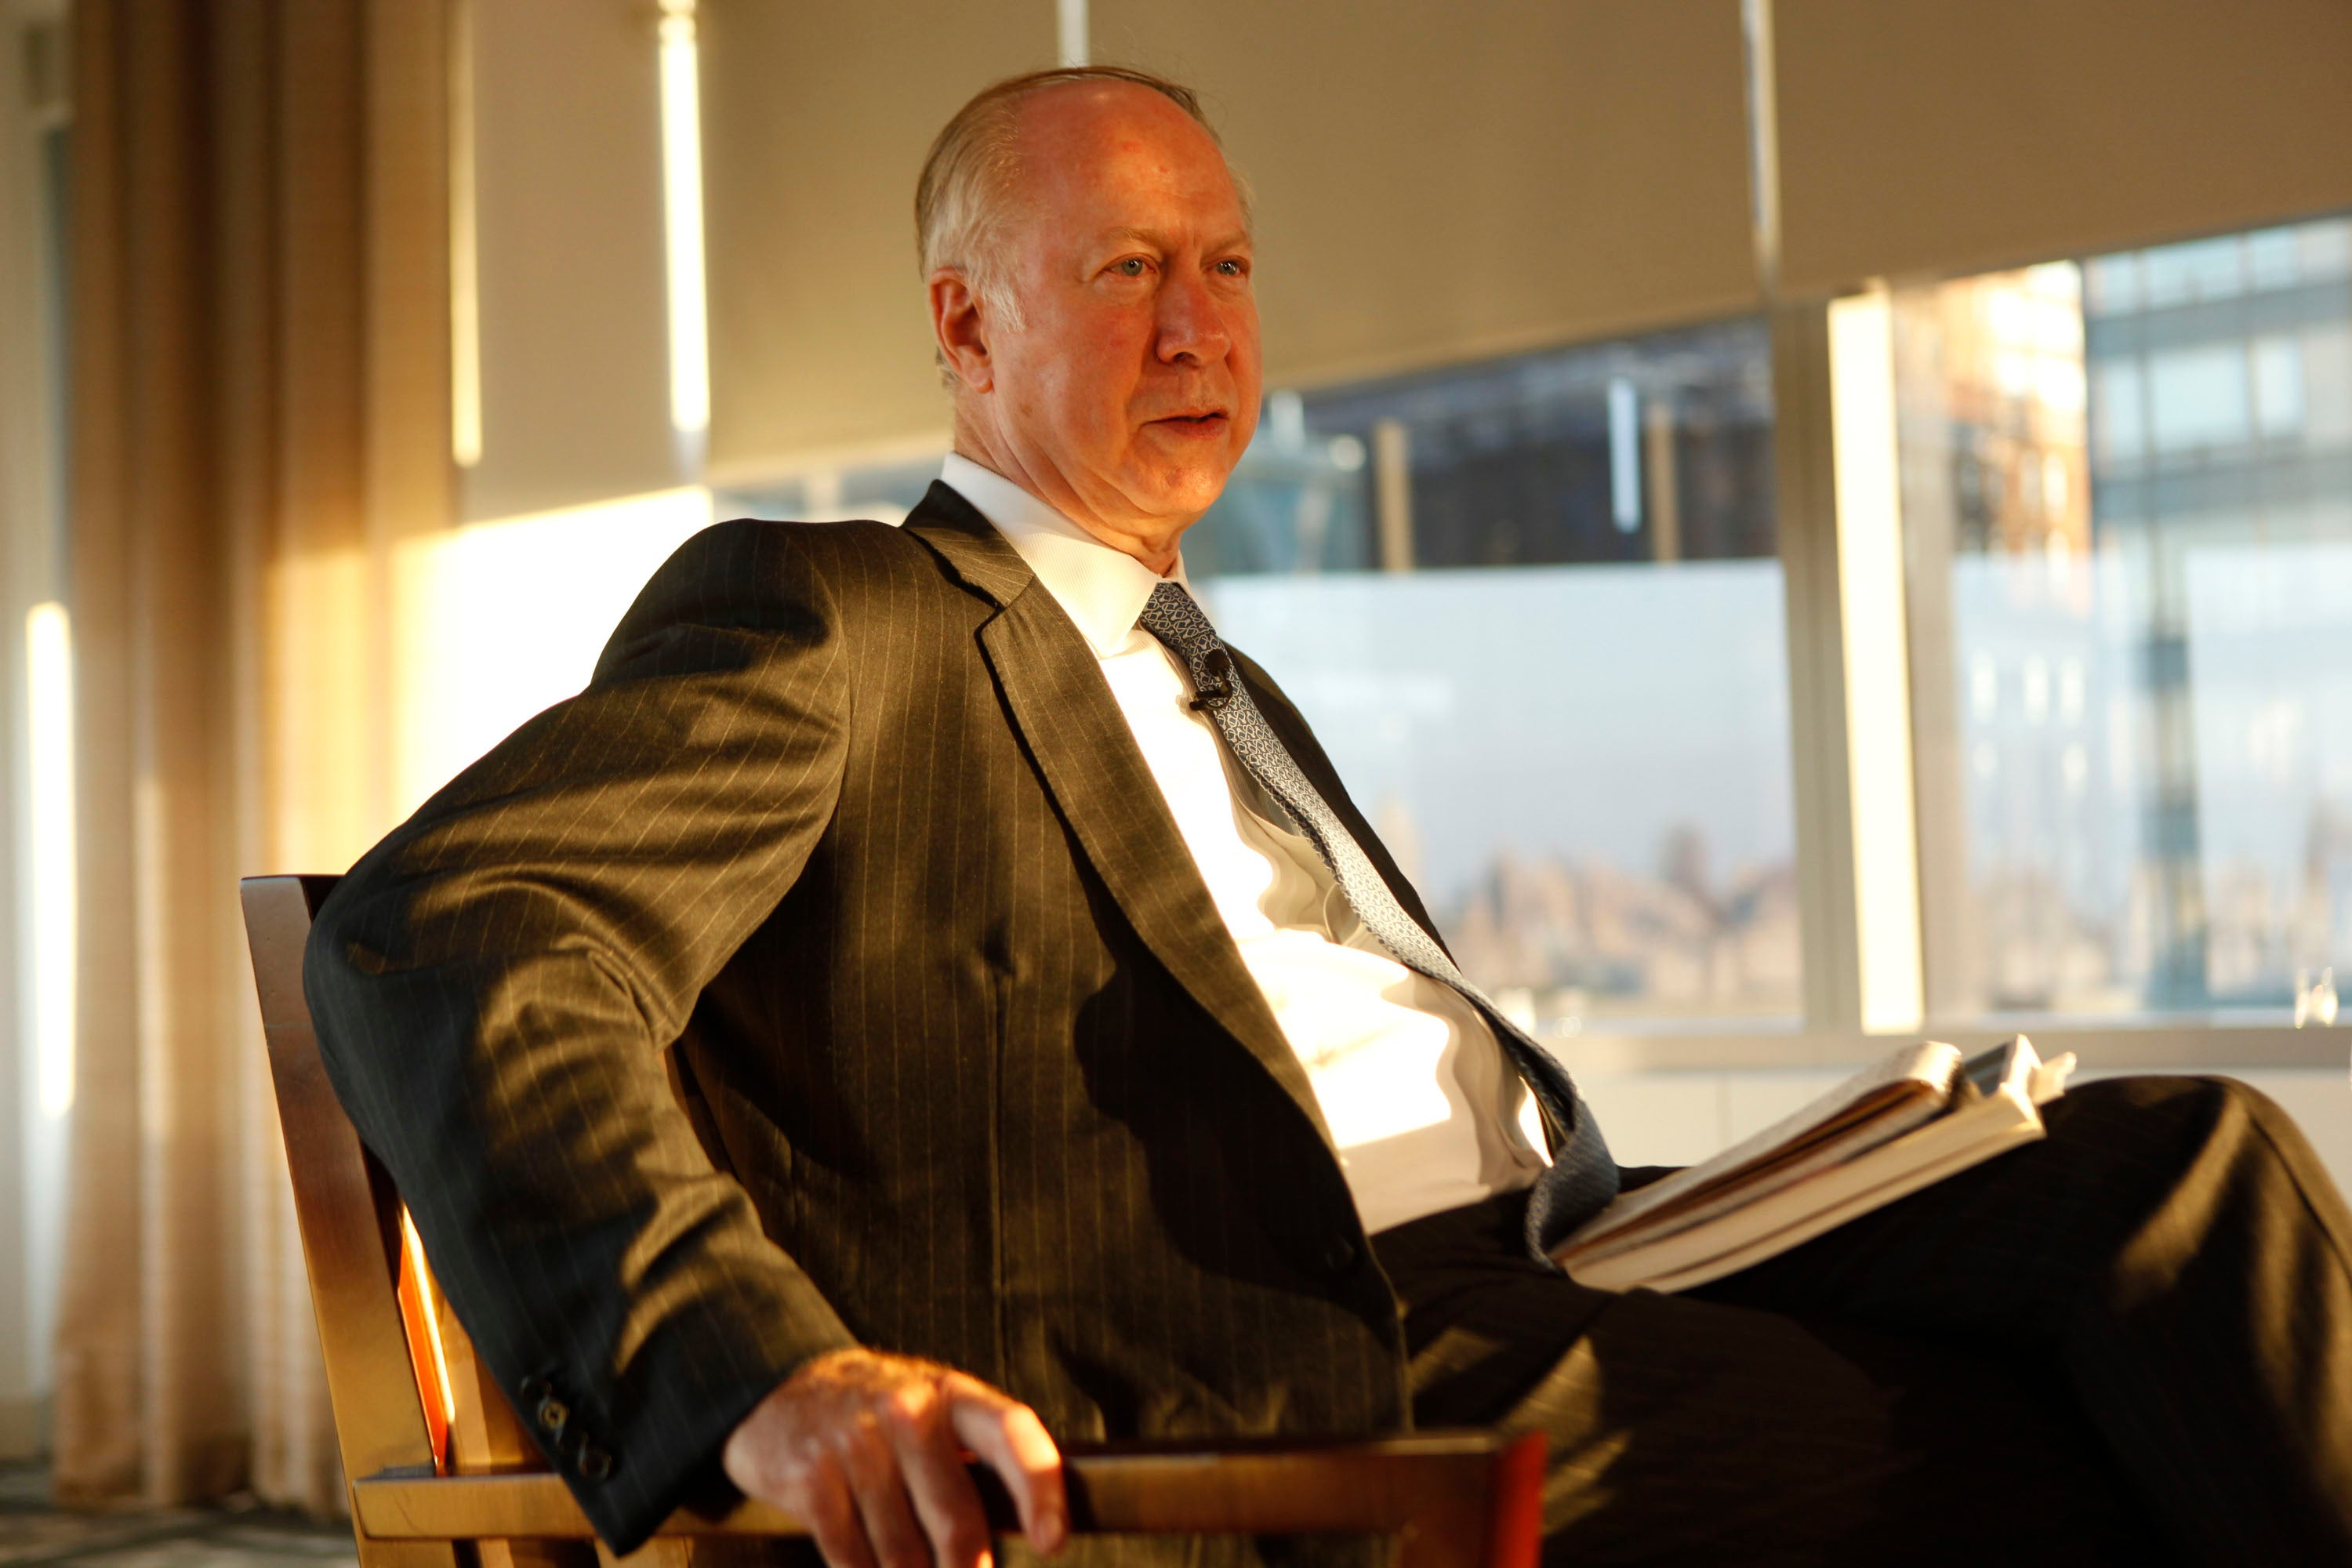 Gergen, wearing a suit, is seated in a chair in a sunny room.